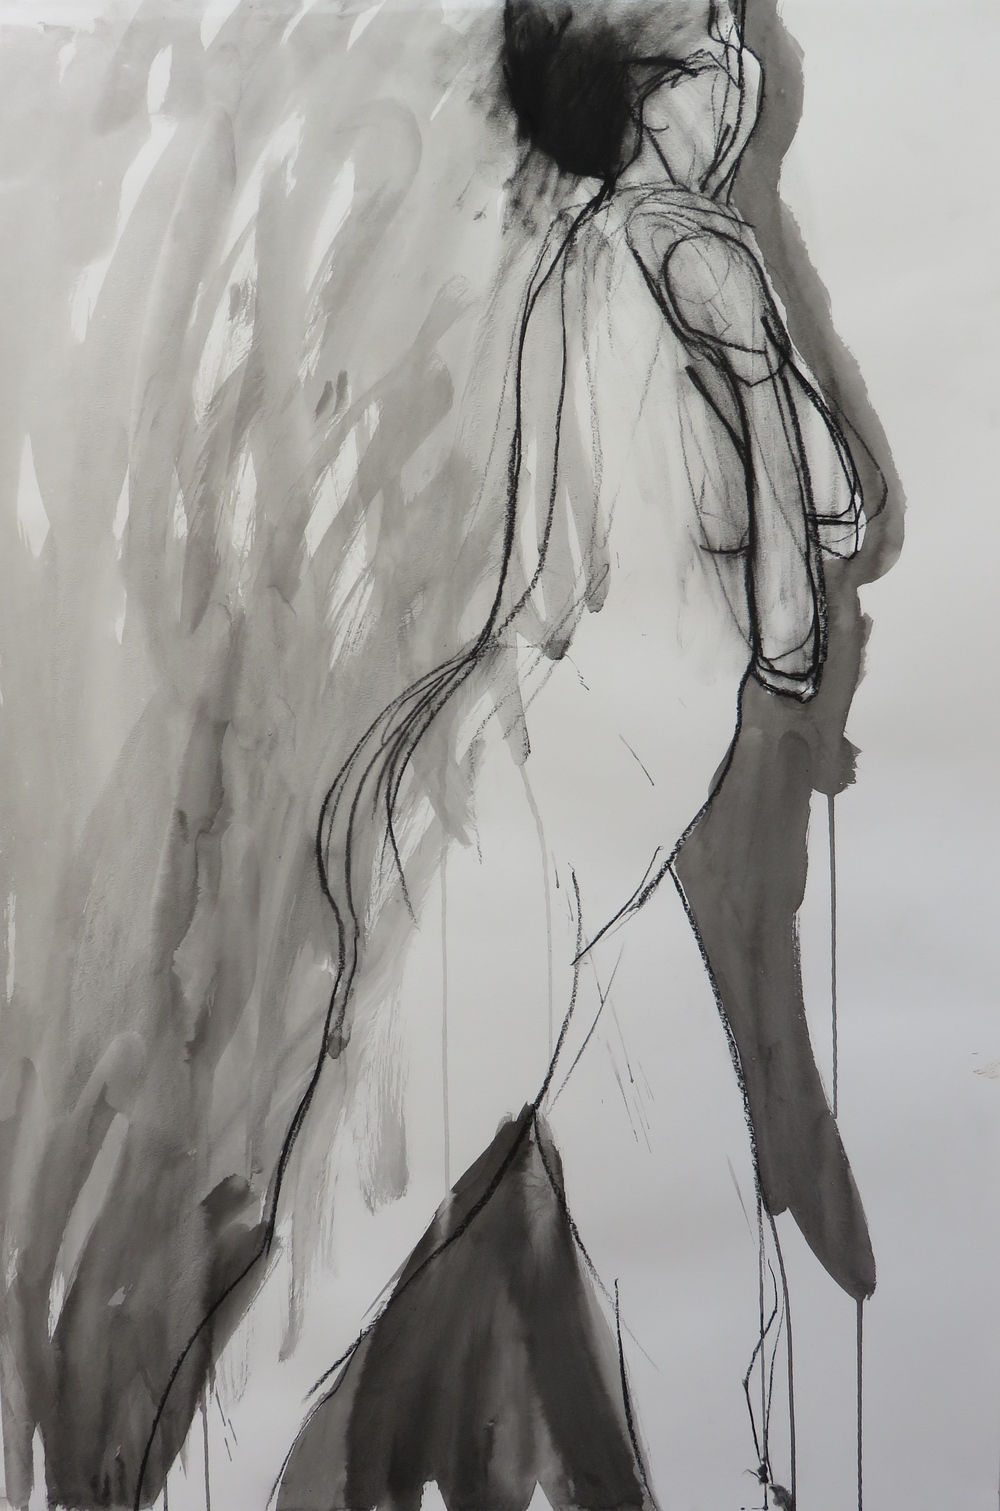 Hiding, 36 x 24 ink and charcoal on paper